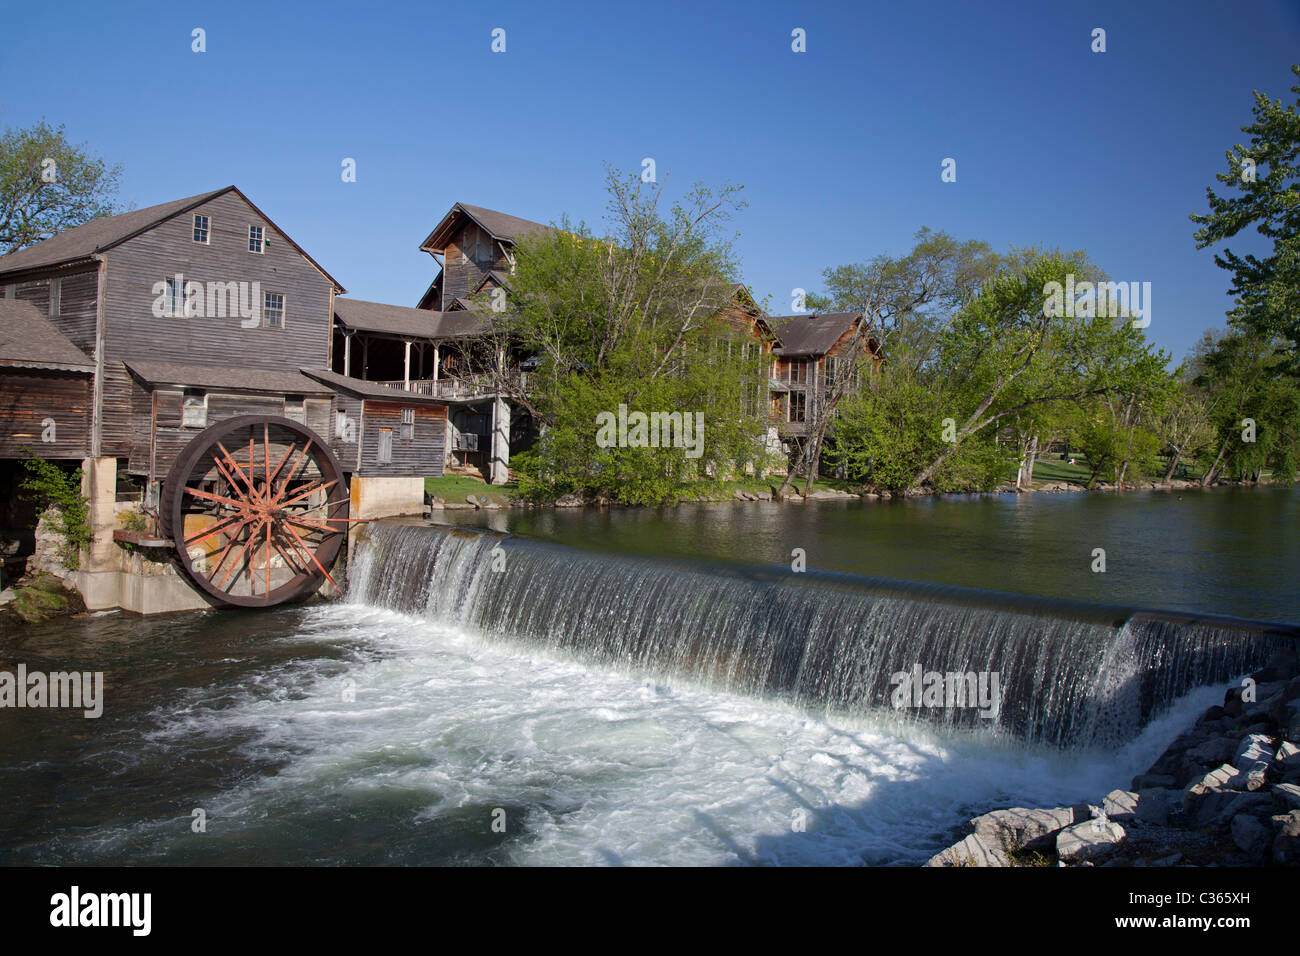 Historic Tennessee Grist Mill - Stock Image